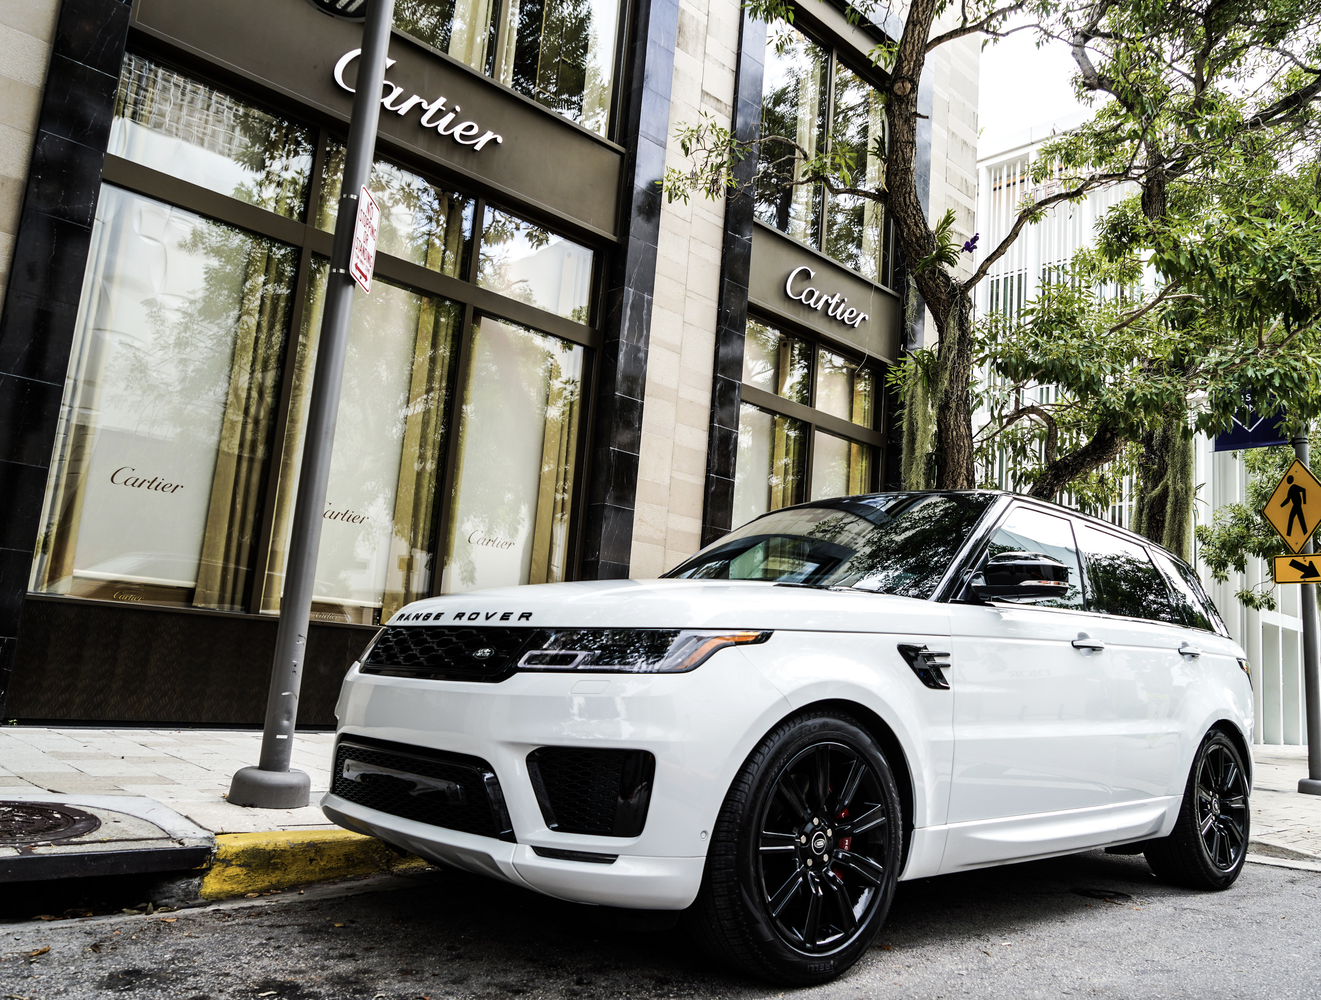 Image #3 of our  Range Rover Sport 22 White    In Miami Fort Lauderdale Palm Beach South Florida